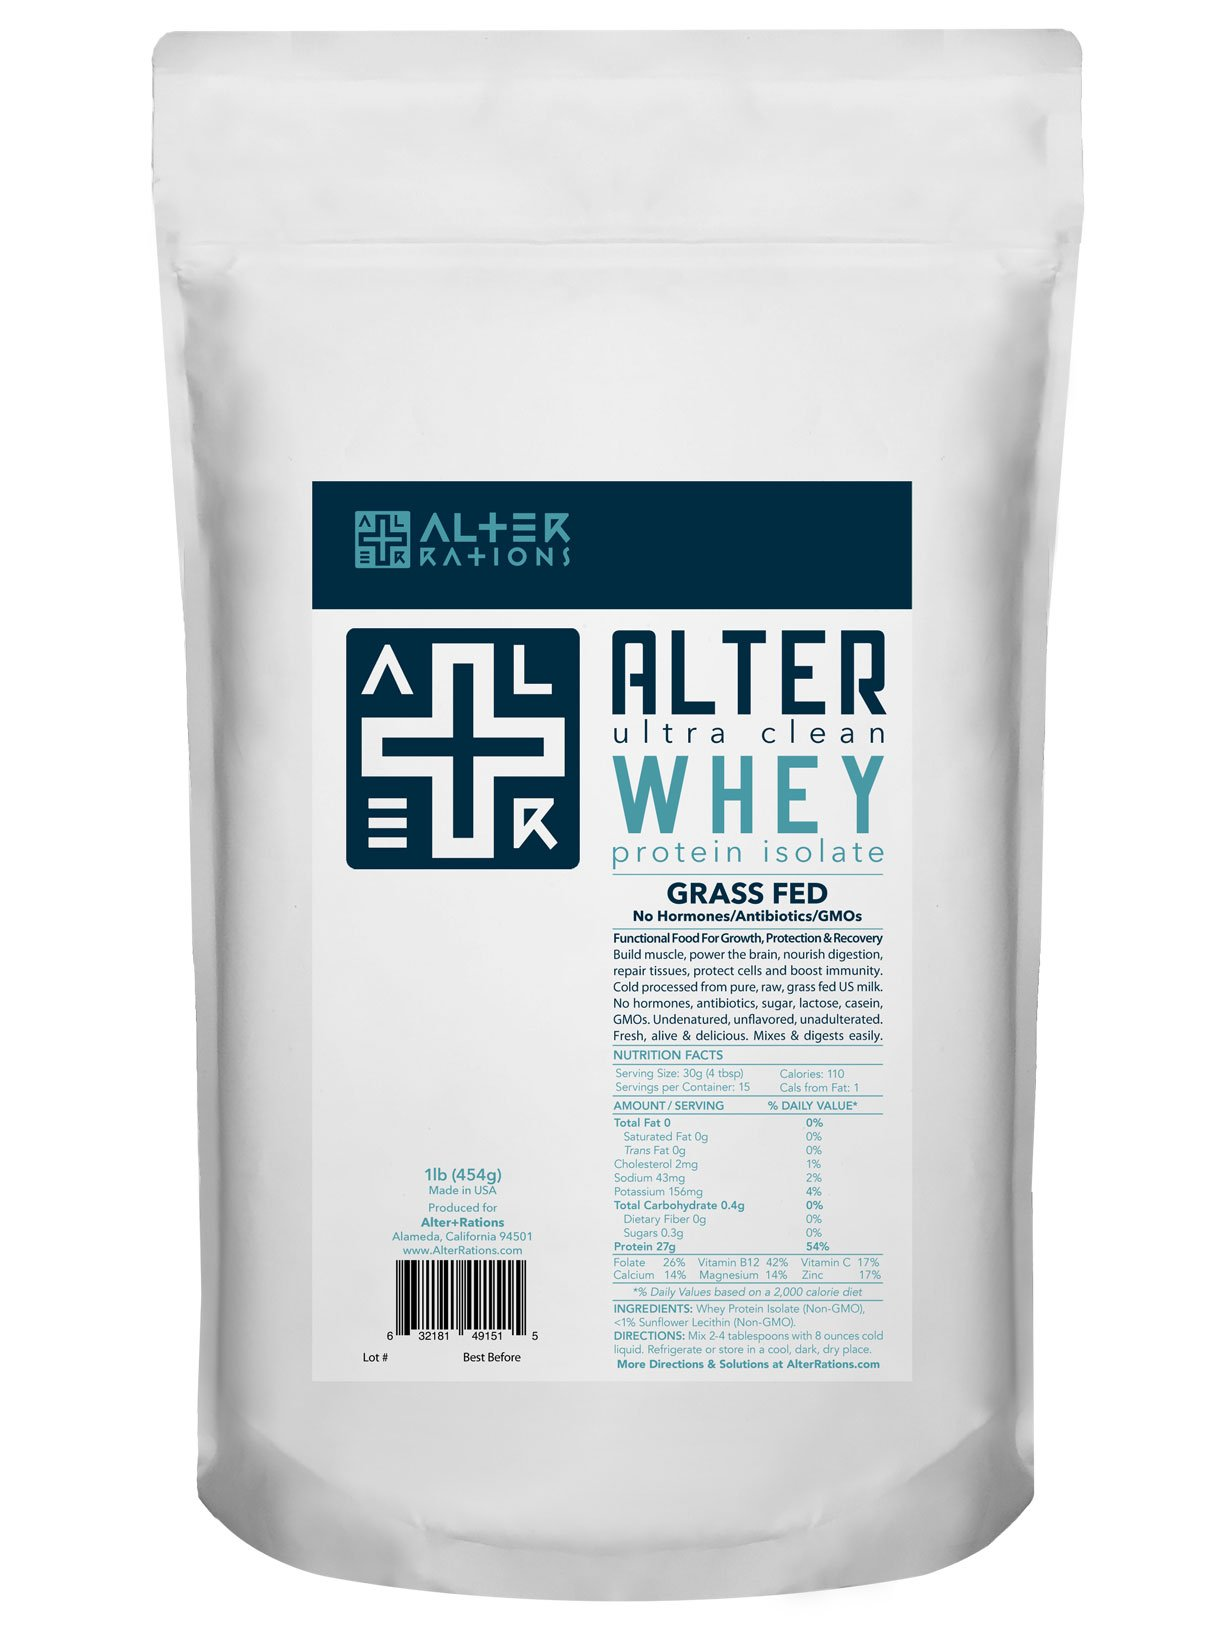 ALTER+WHEY | Ultra Pure Grass Fed Whey Protein Isolate | Cold Processed. Undenatured. Unadulterated. | No Hormones, Antiobiotics, GMOs, Sugar, Additives. | Deliciously fresh & smooth. Mixes instantly. (1 lb)